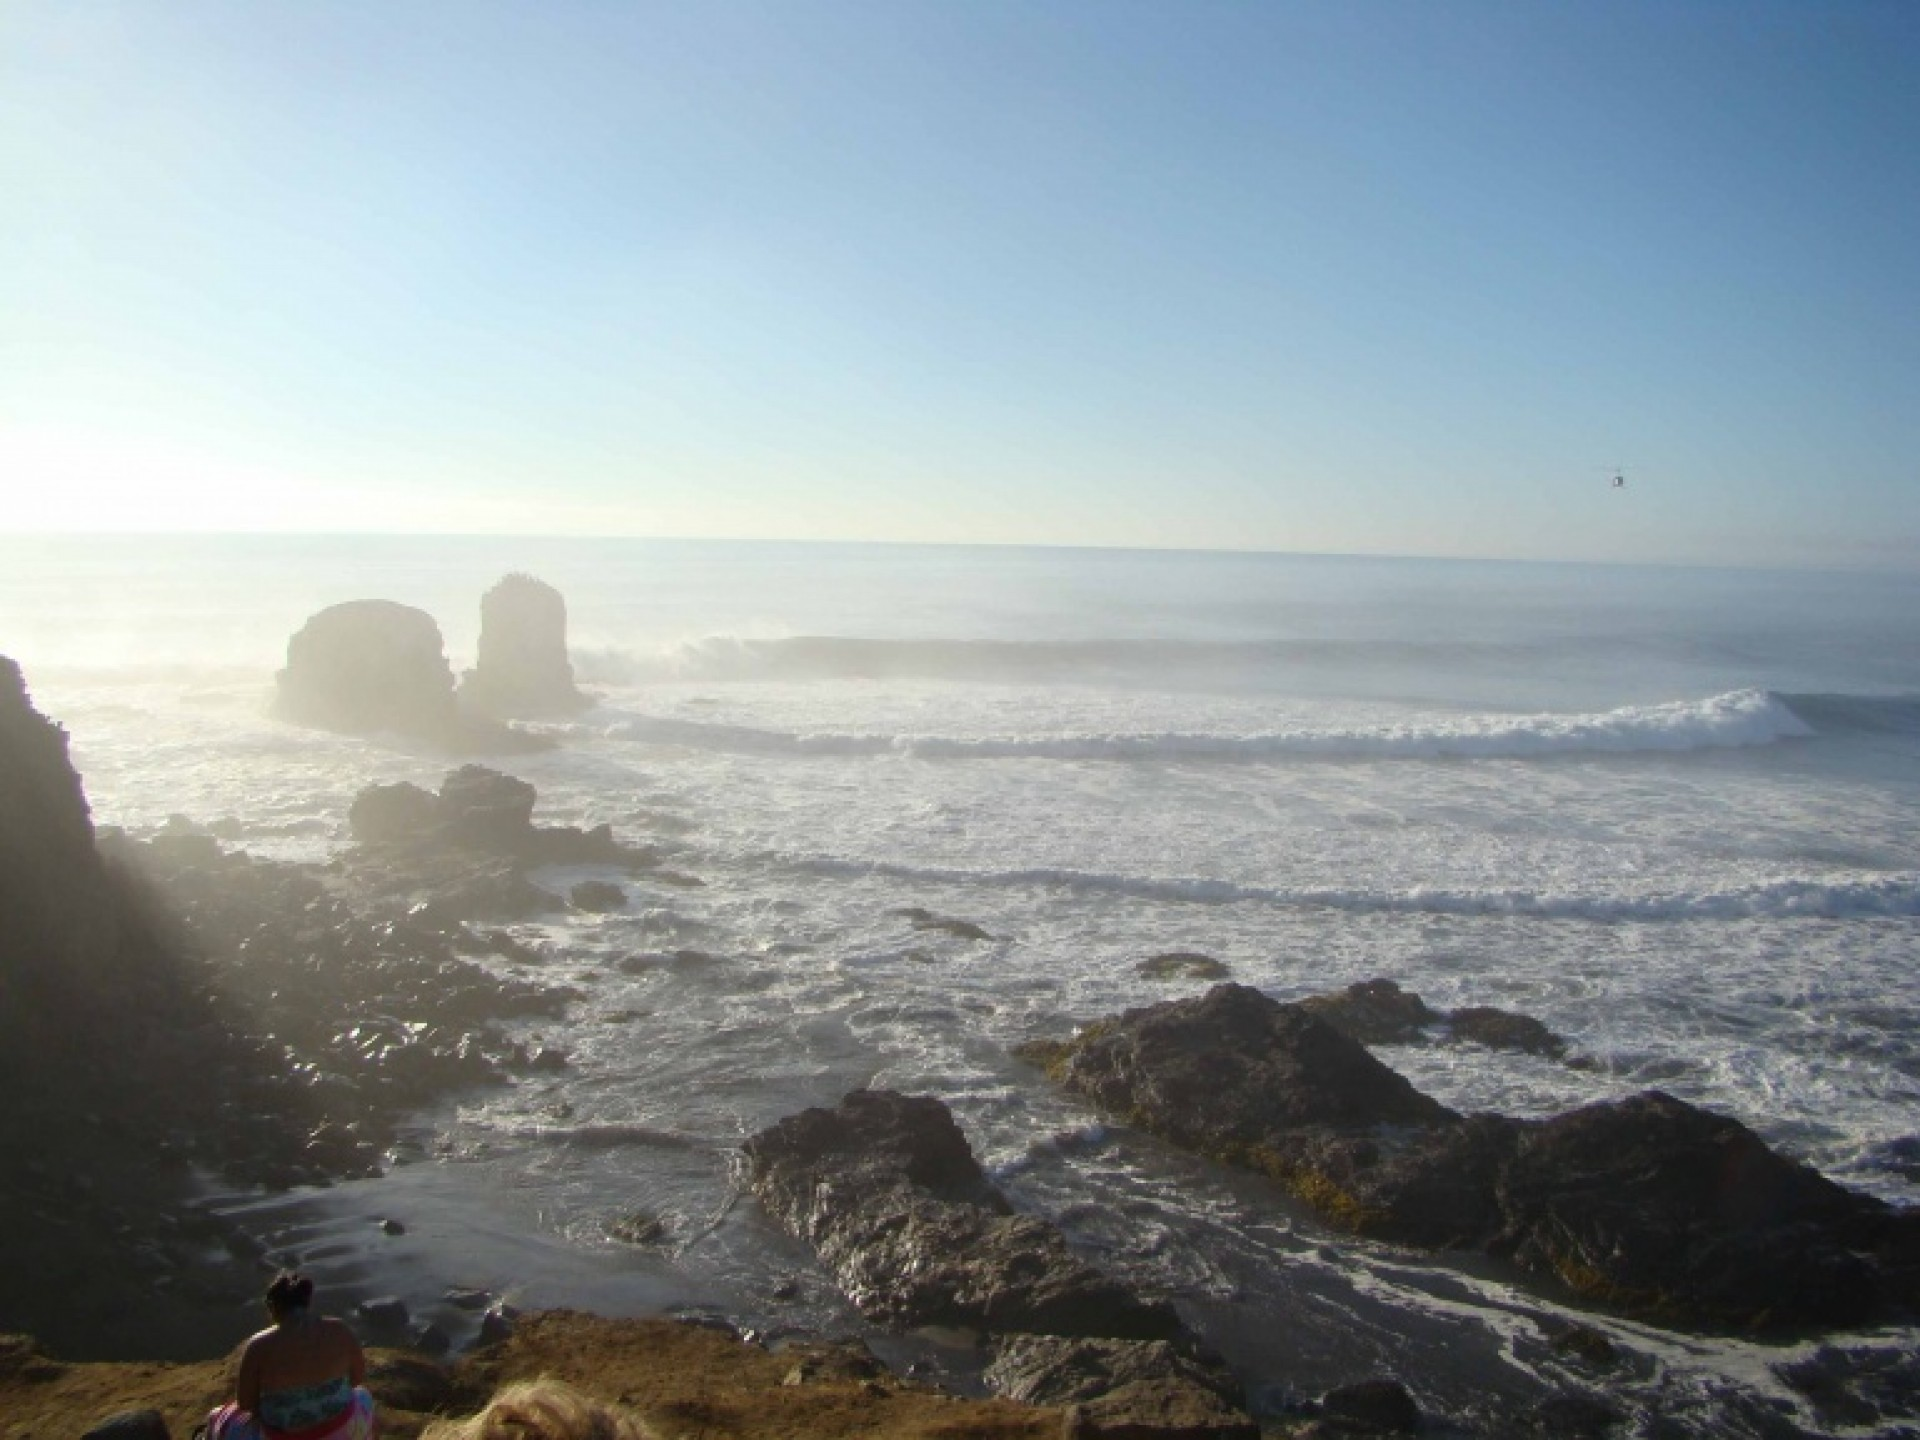 fride's photo of Punta de Lobos